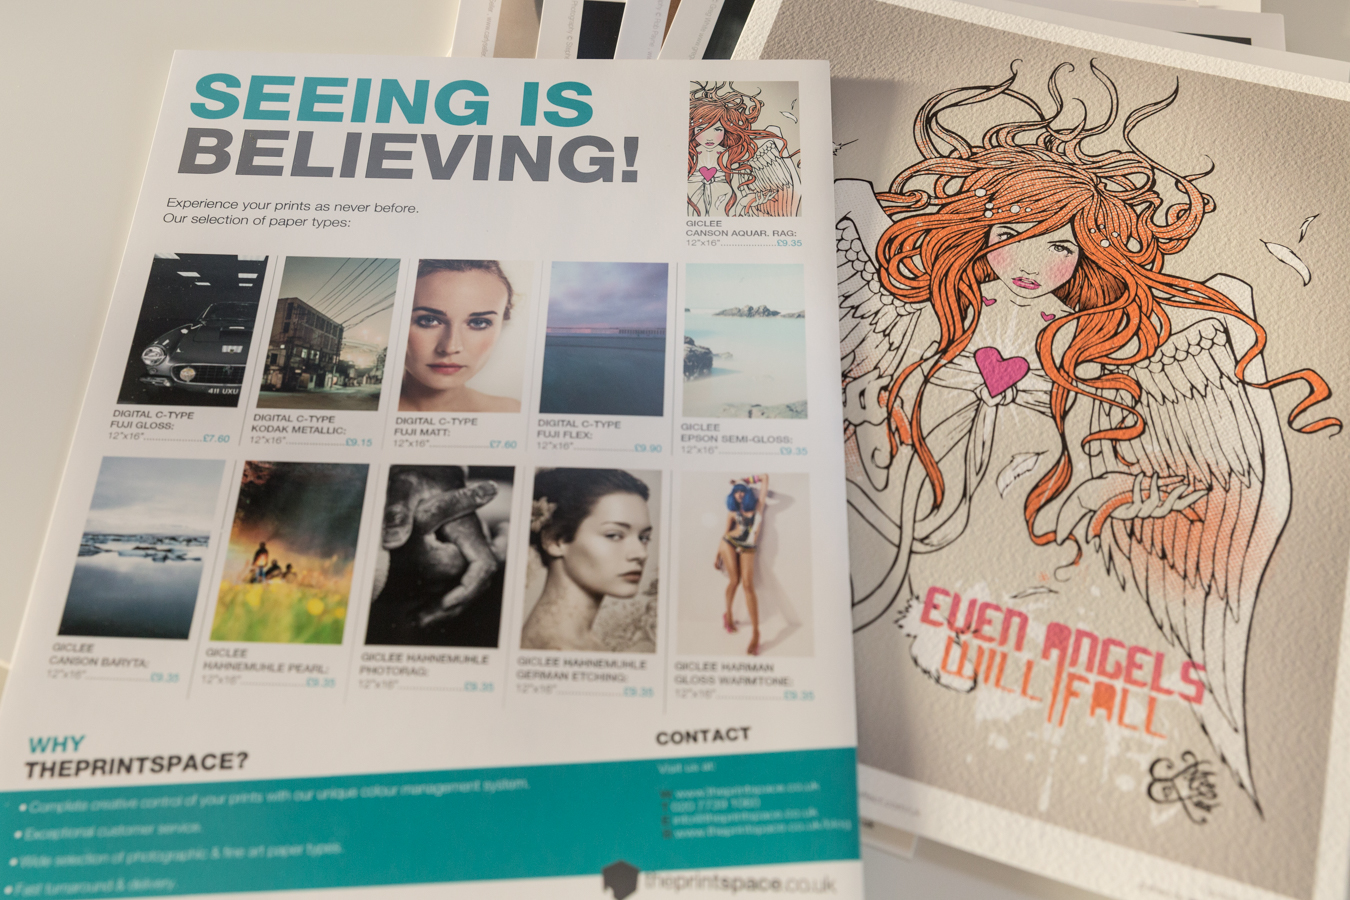 theprintspace's awesome sample pack, featuring some awesome work